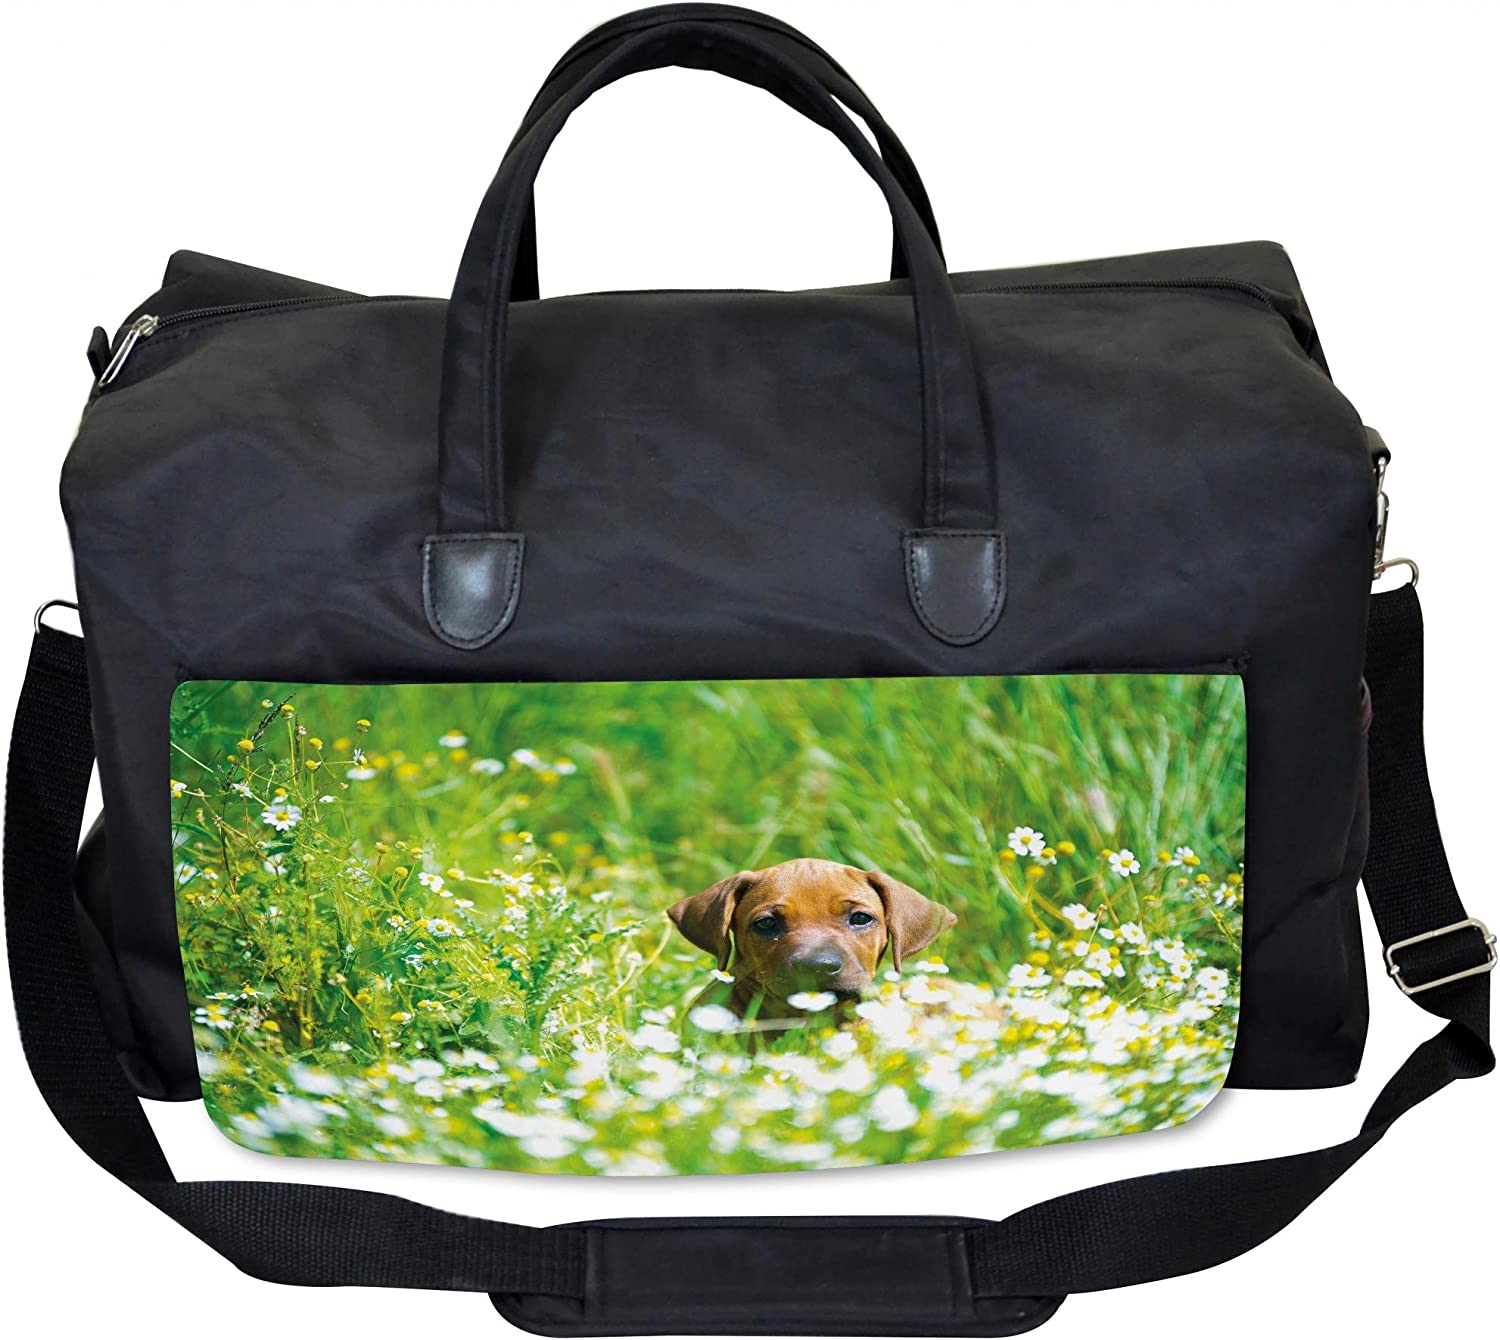 Lunarable Cute Gym Bag, Rhodesian Ridgeback in Field, Large Weekender Carryon